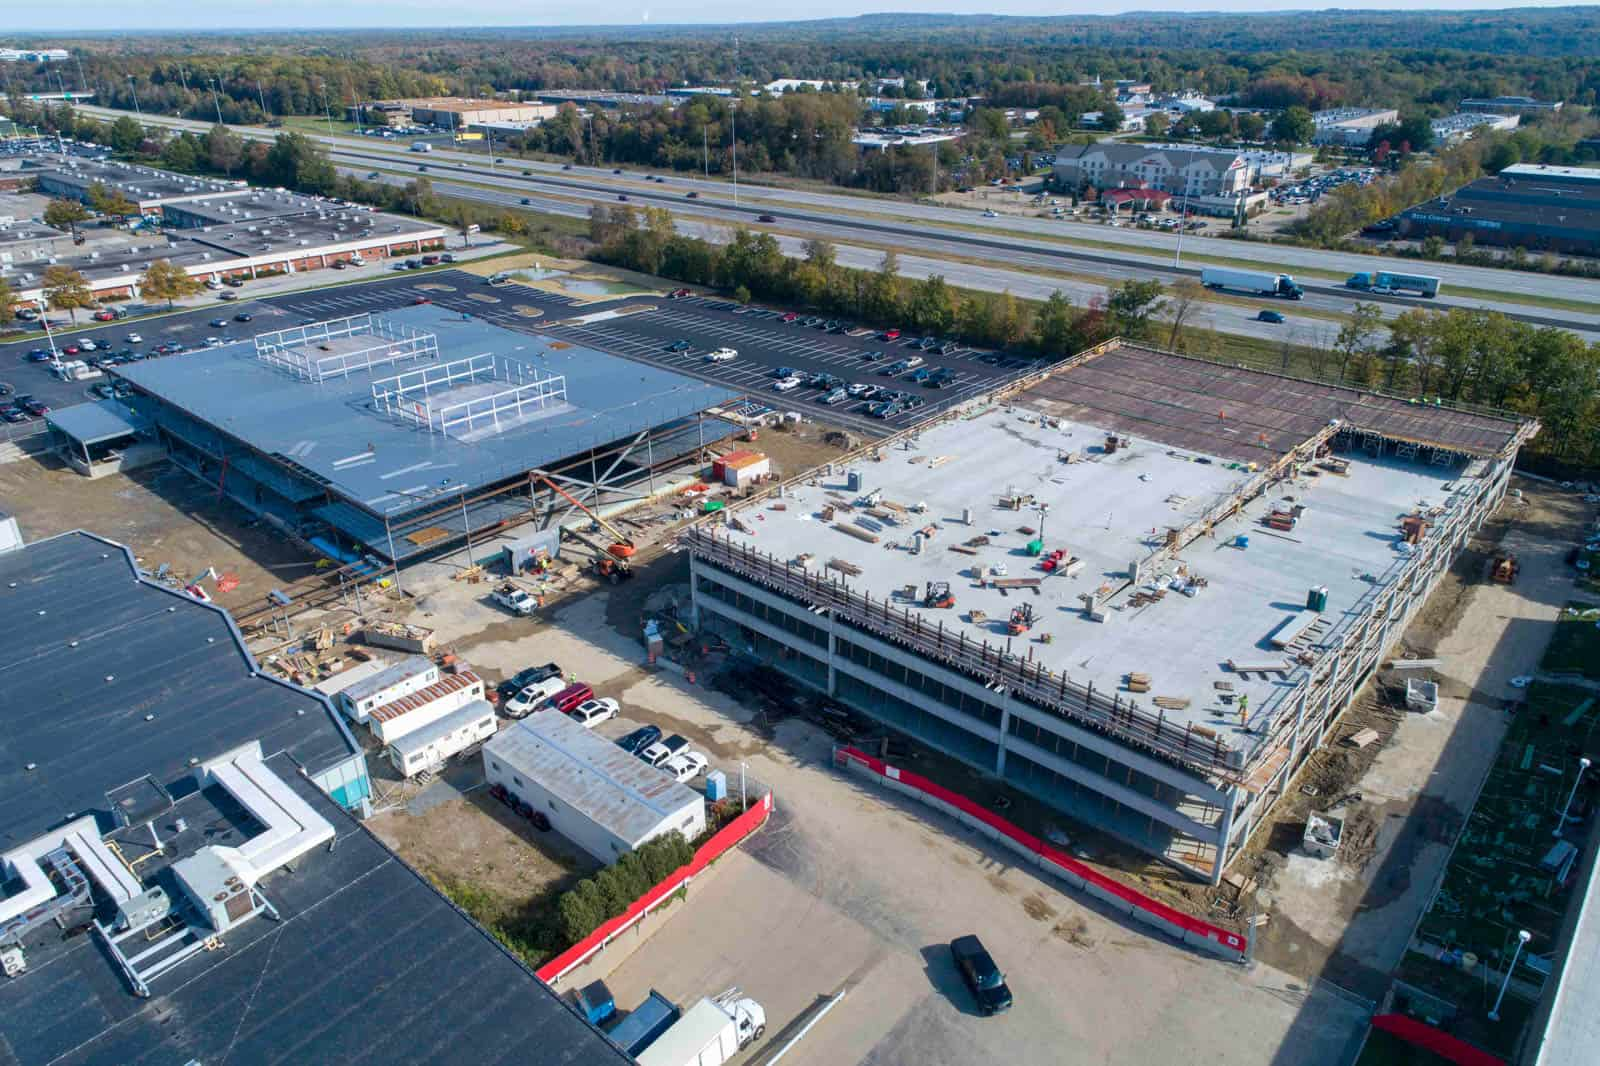 aerial drone photo of construction of parking garage and office building in Highland Heights, Ohio